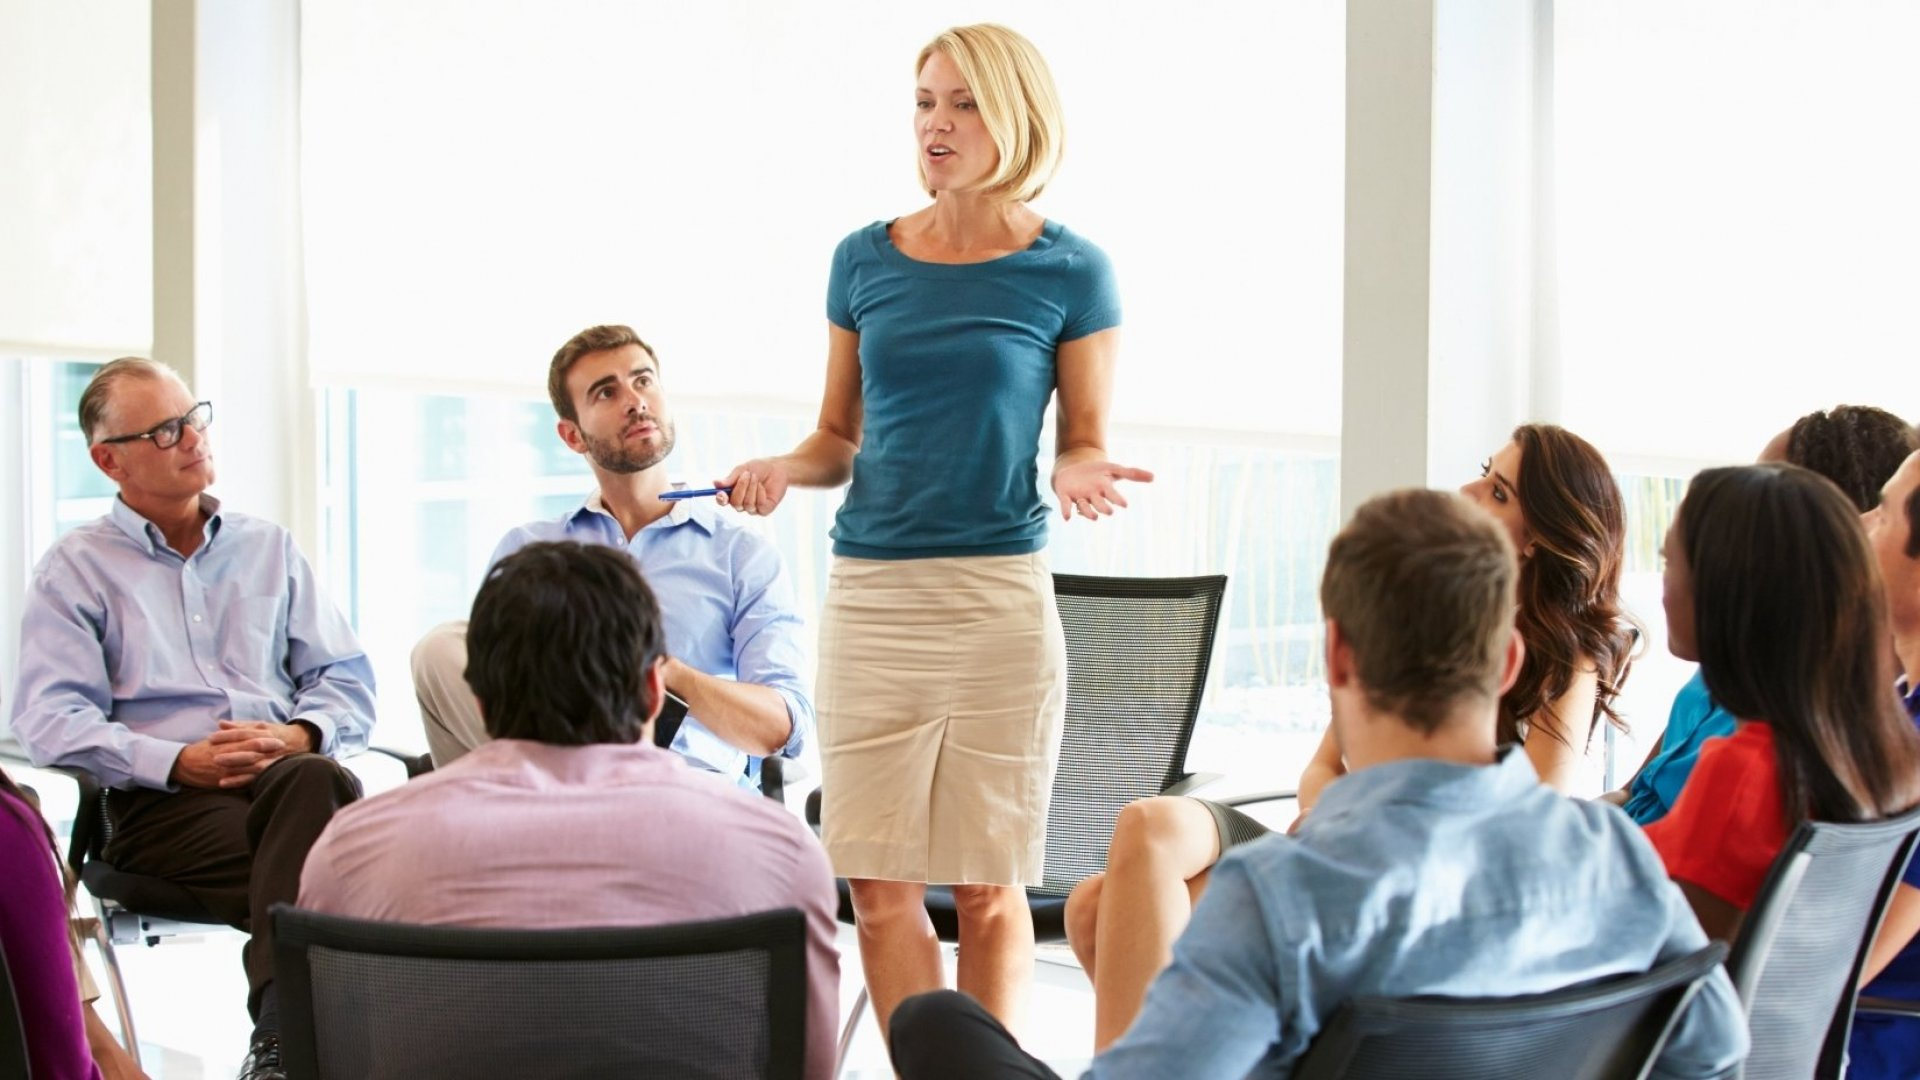 5 Soft Skills You Need to Master for Workplace Success